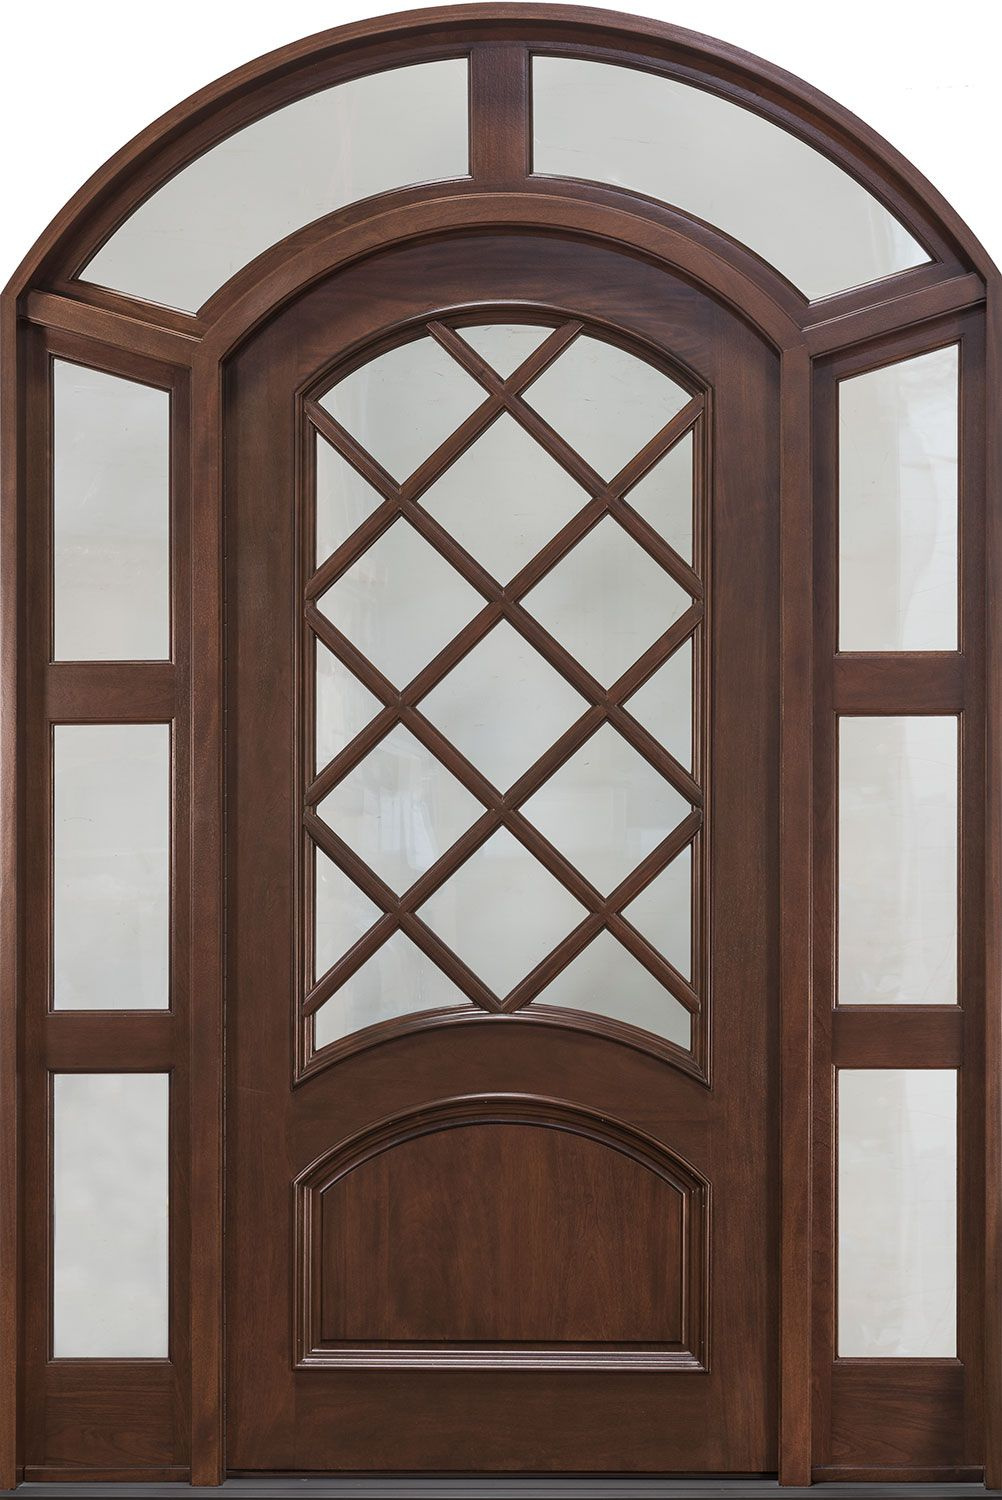 Front Door Custom Single With 2 Sidelites W Transom Solid Wood Natural Walnut Finish Clic Model Db 552w 2sl Tr Cst Glenview Doors In